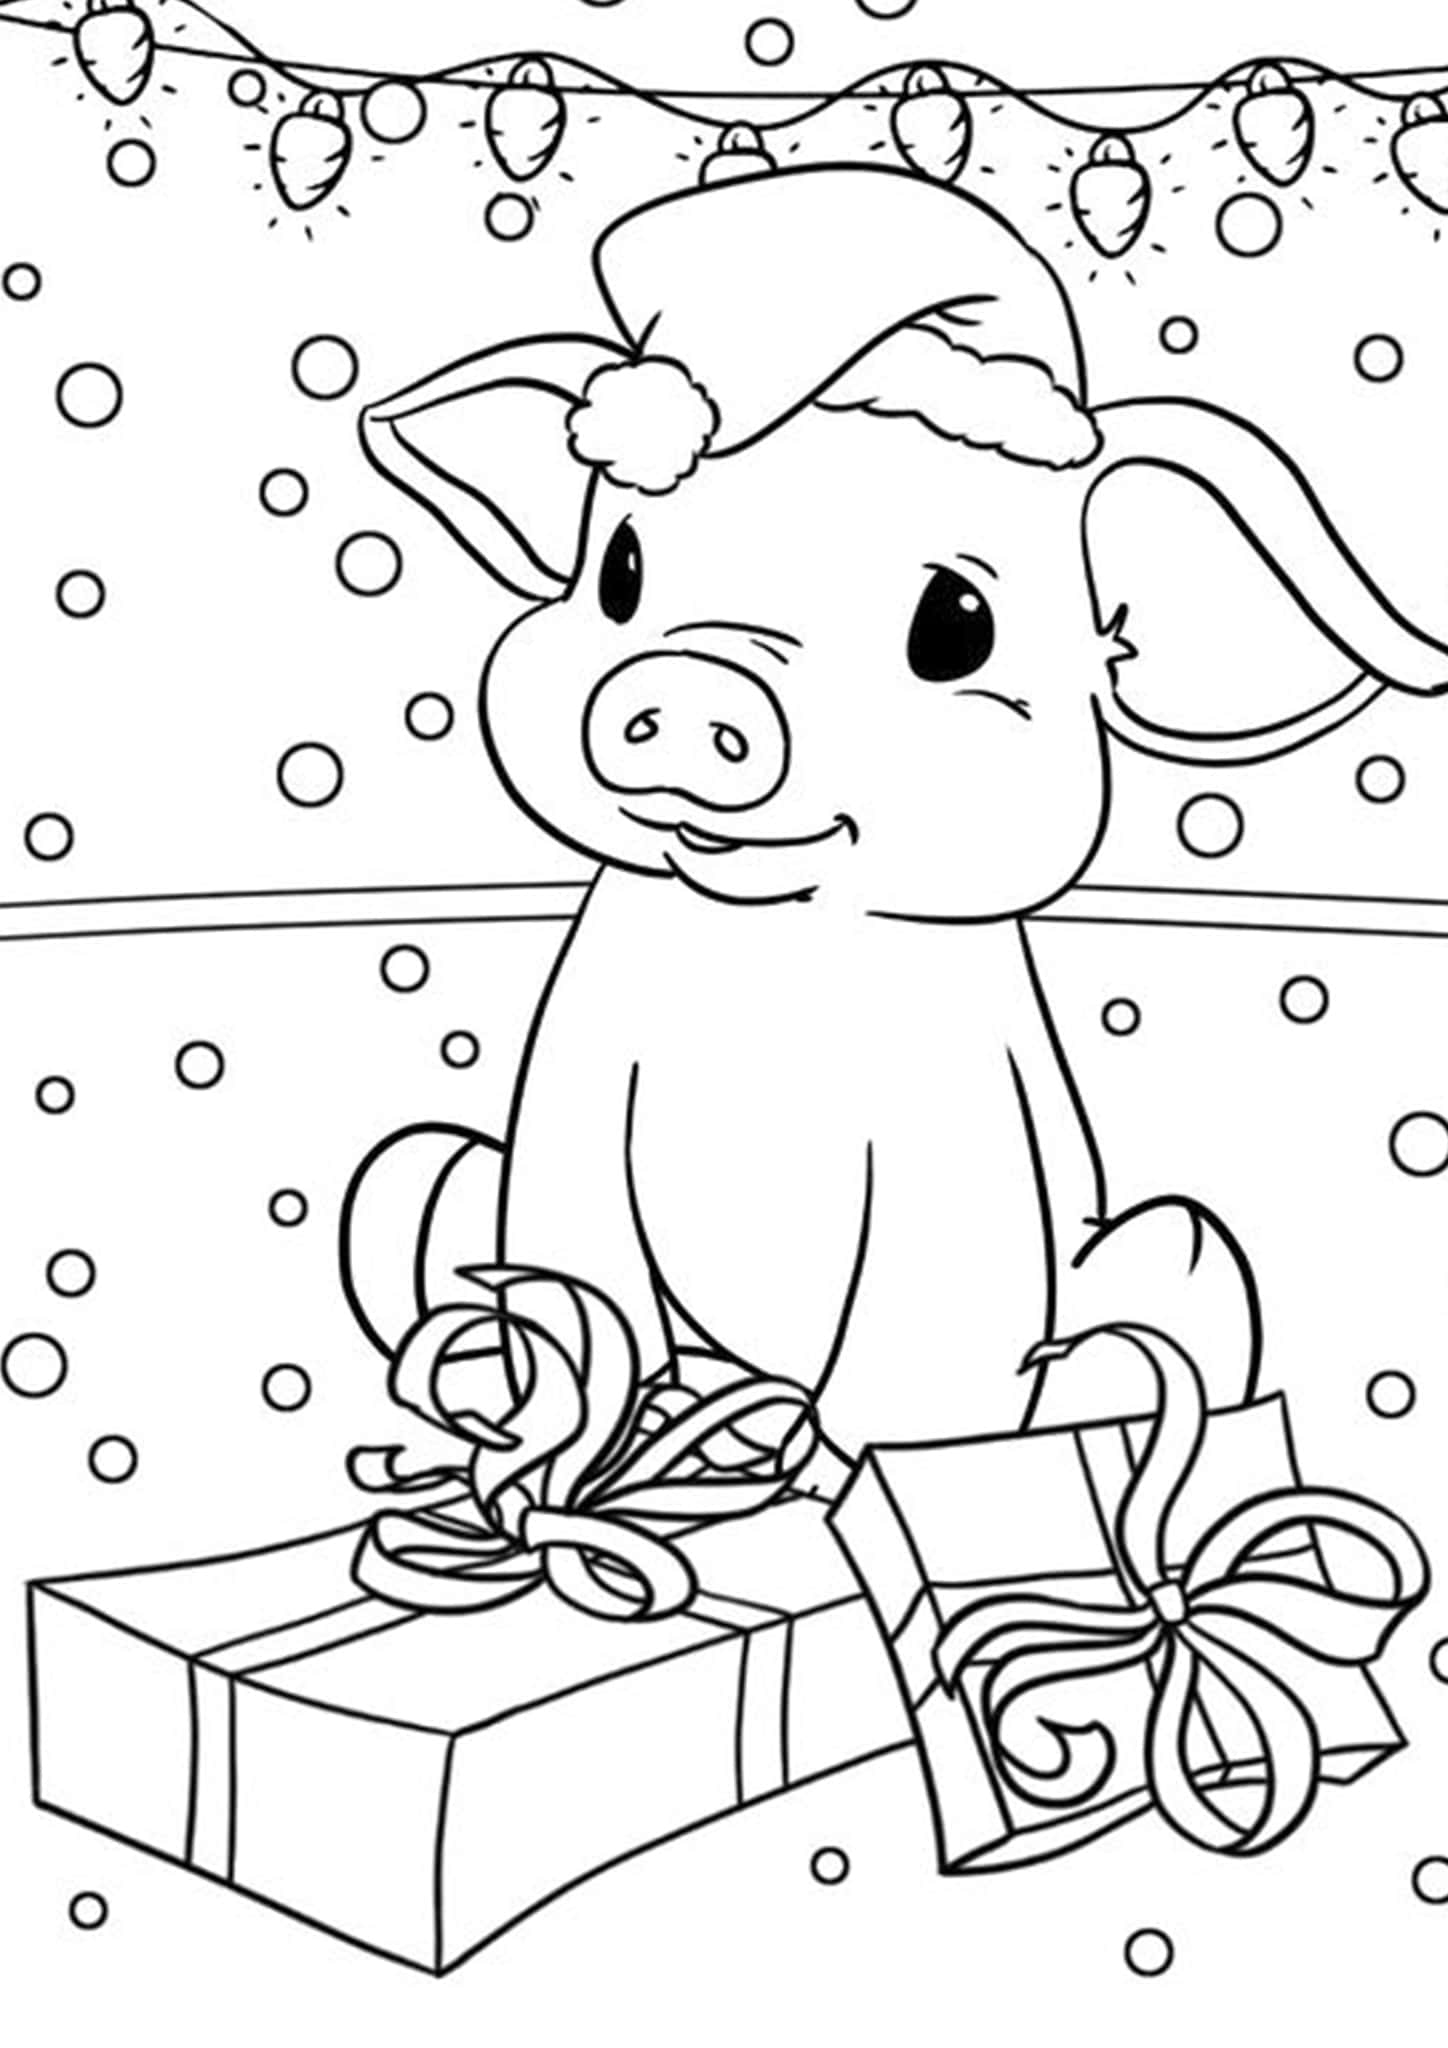 coloring pages for kids to print printable toad coloring pages for kids for kids to print pages coloring